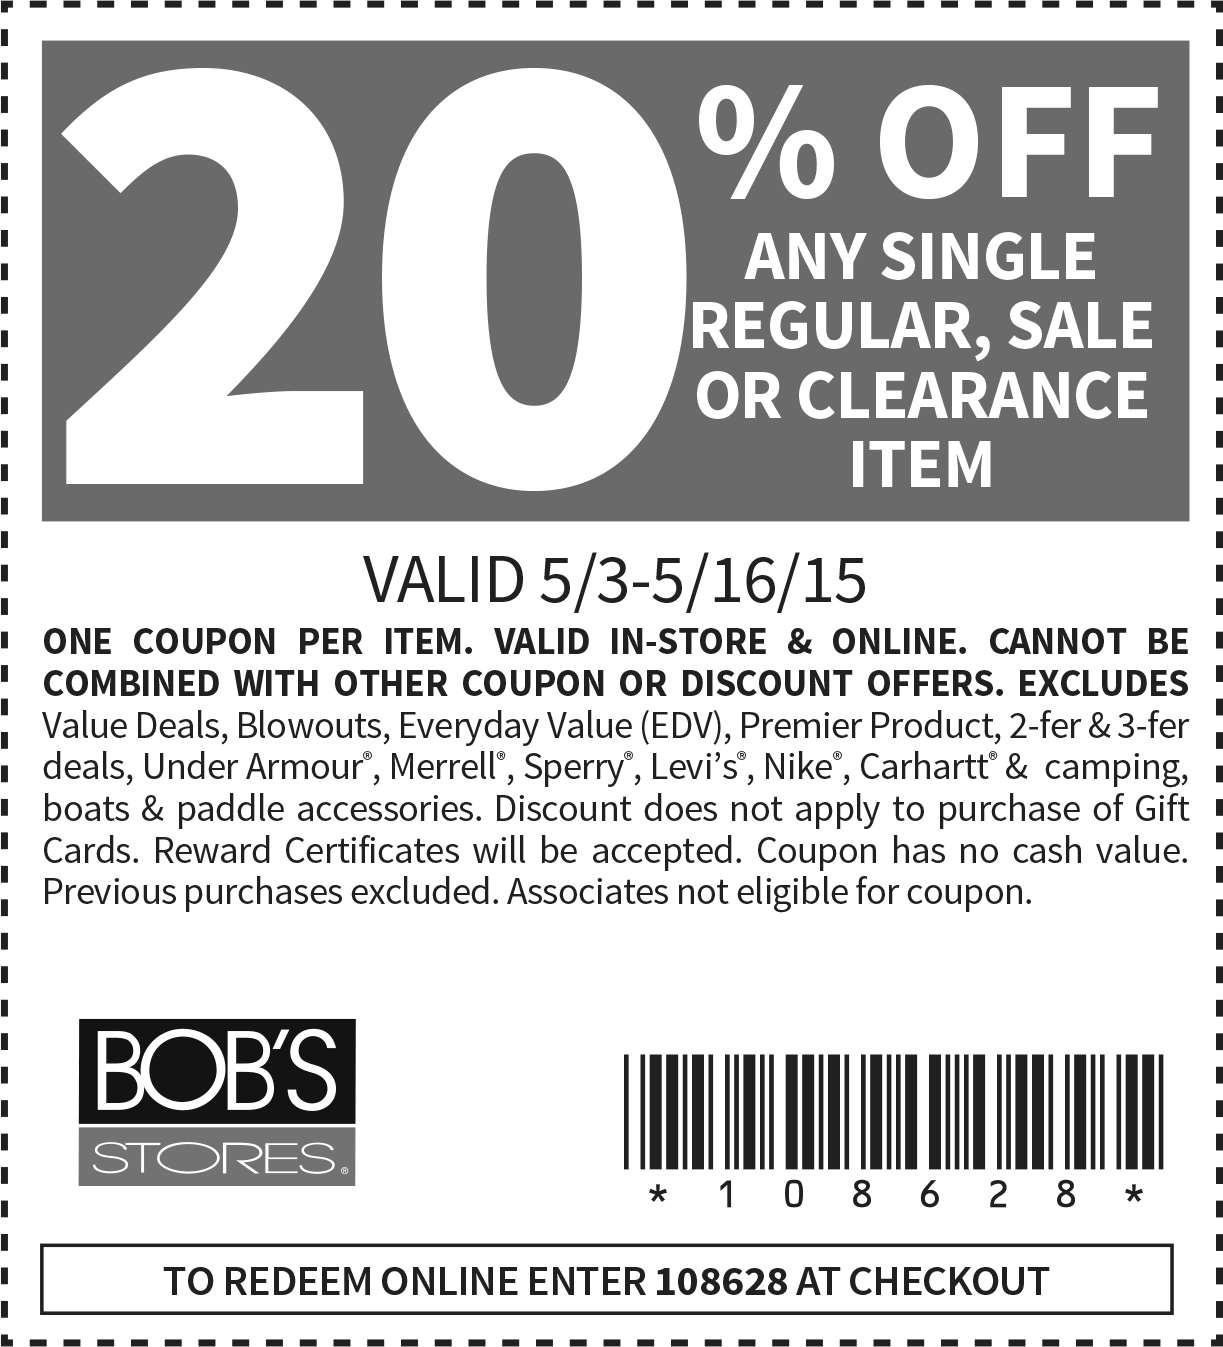 Bobs Stores Coupon March 2017 20% off a single item at Bobs Stores, or online via promo code 108628